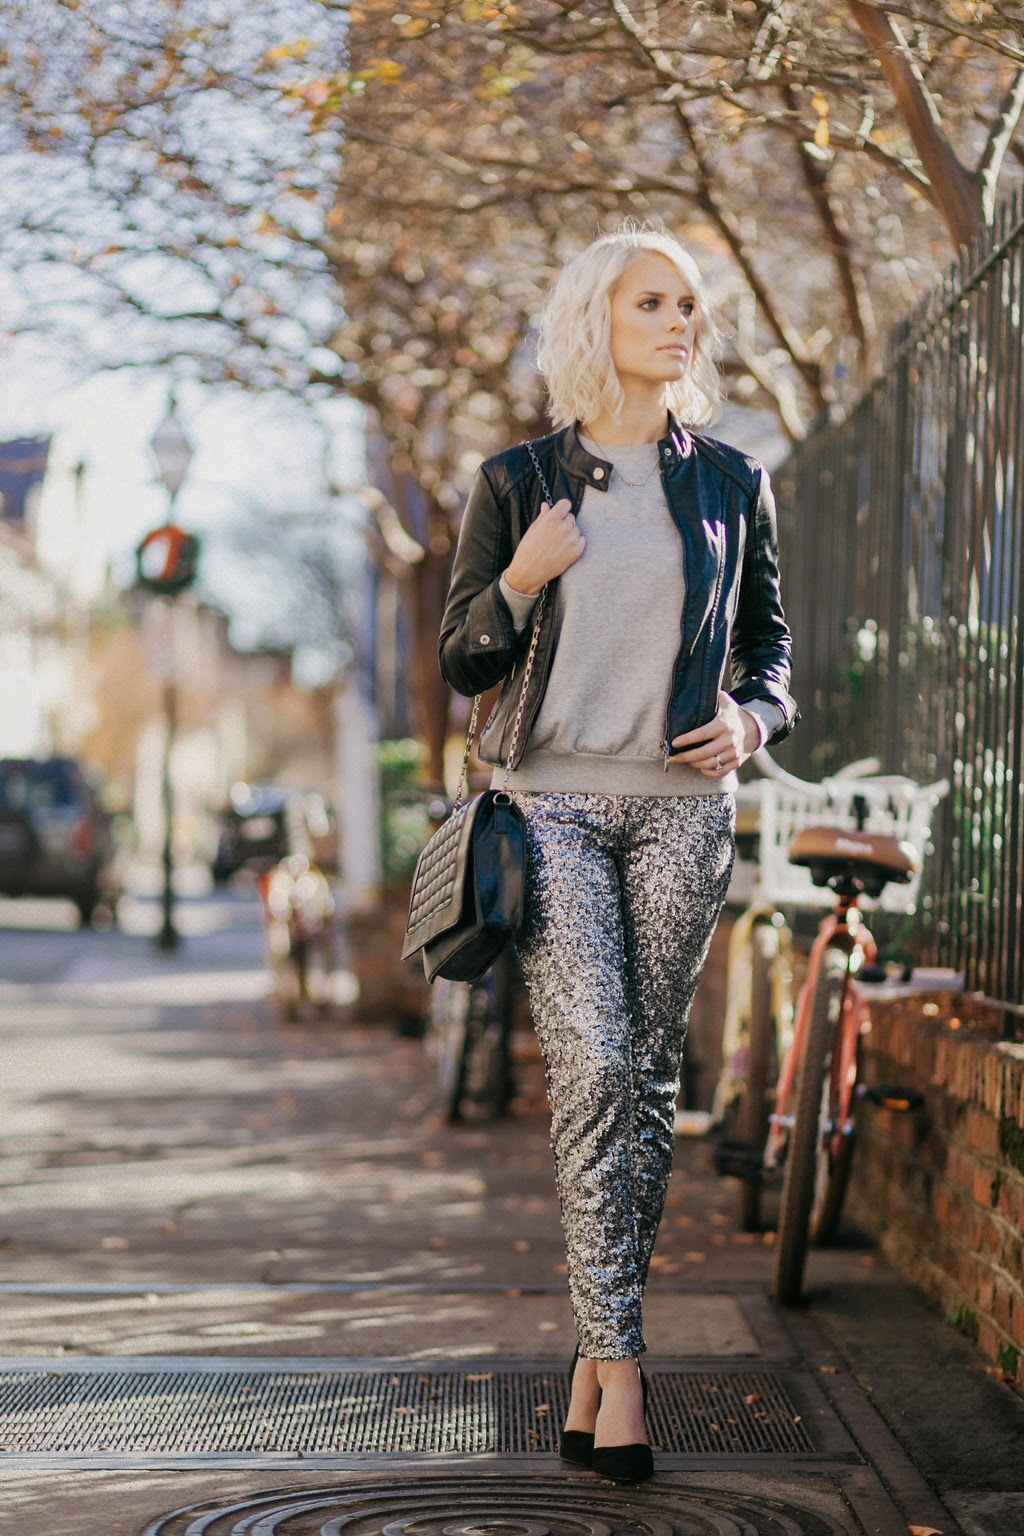 long bob platinum tousled hair blonde leather jacket fitted forever 21 inexpensive cheap budget 10 dollar grey comfy sweatshirt h&M hm silver sequin pants leggings Christmas Holiday looks party black quilted purse bag handbag clutch sideways gold cross necklace black suede d'orsay pumps heels stilettos steve madden varsity downtown charleston street style sc south carolina fashion blogger dannon k collard like the yogurt